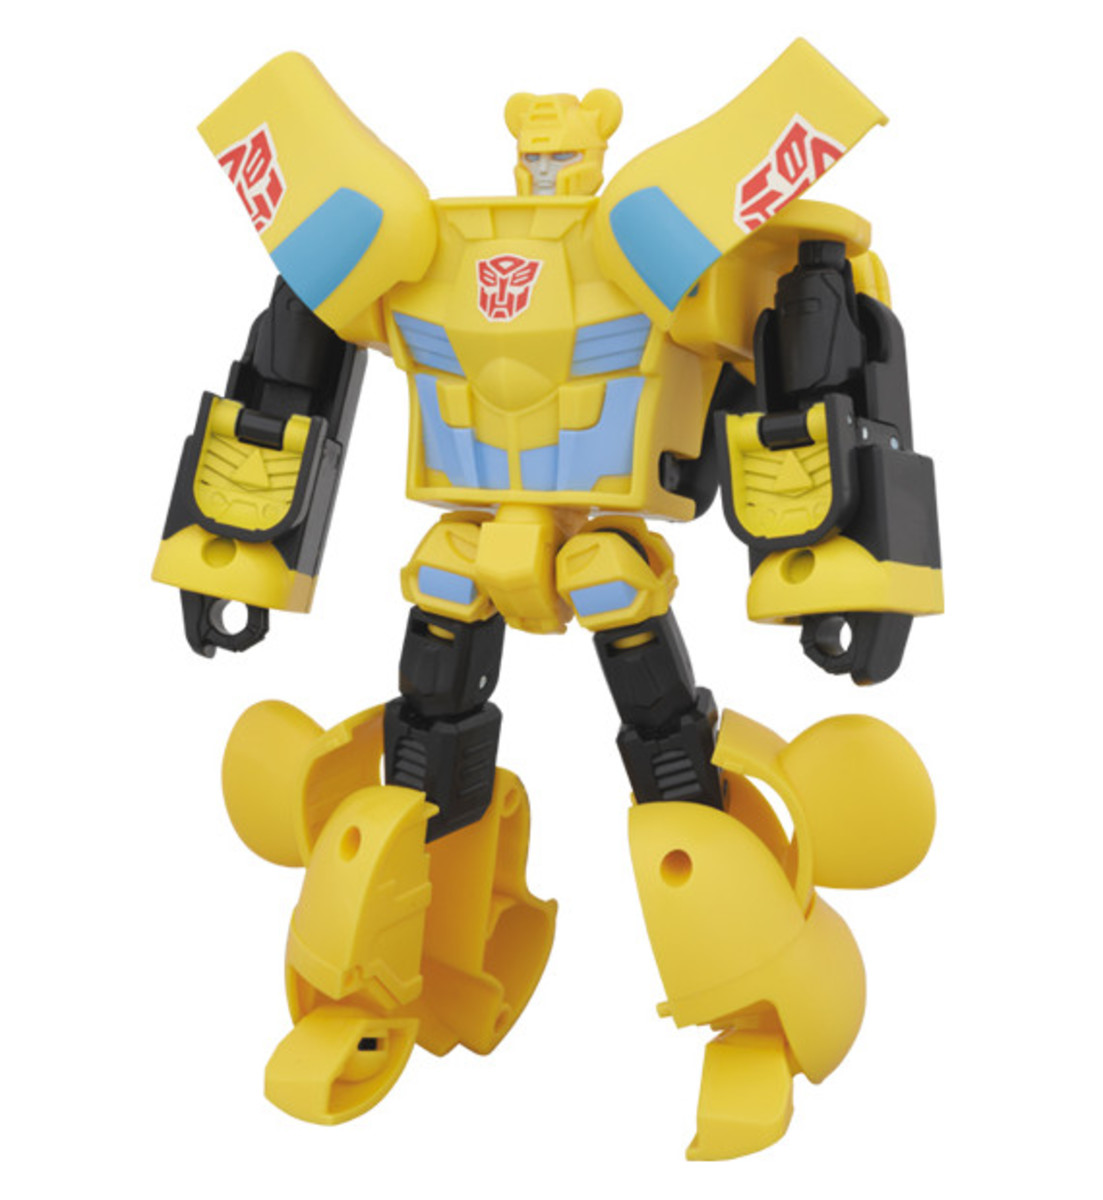 transformers-medicom-toy-transformable-bearbrick-200-percent-set-03